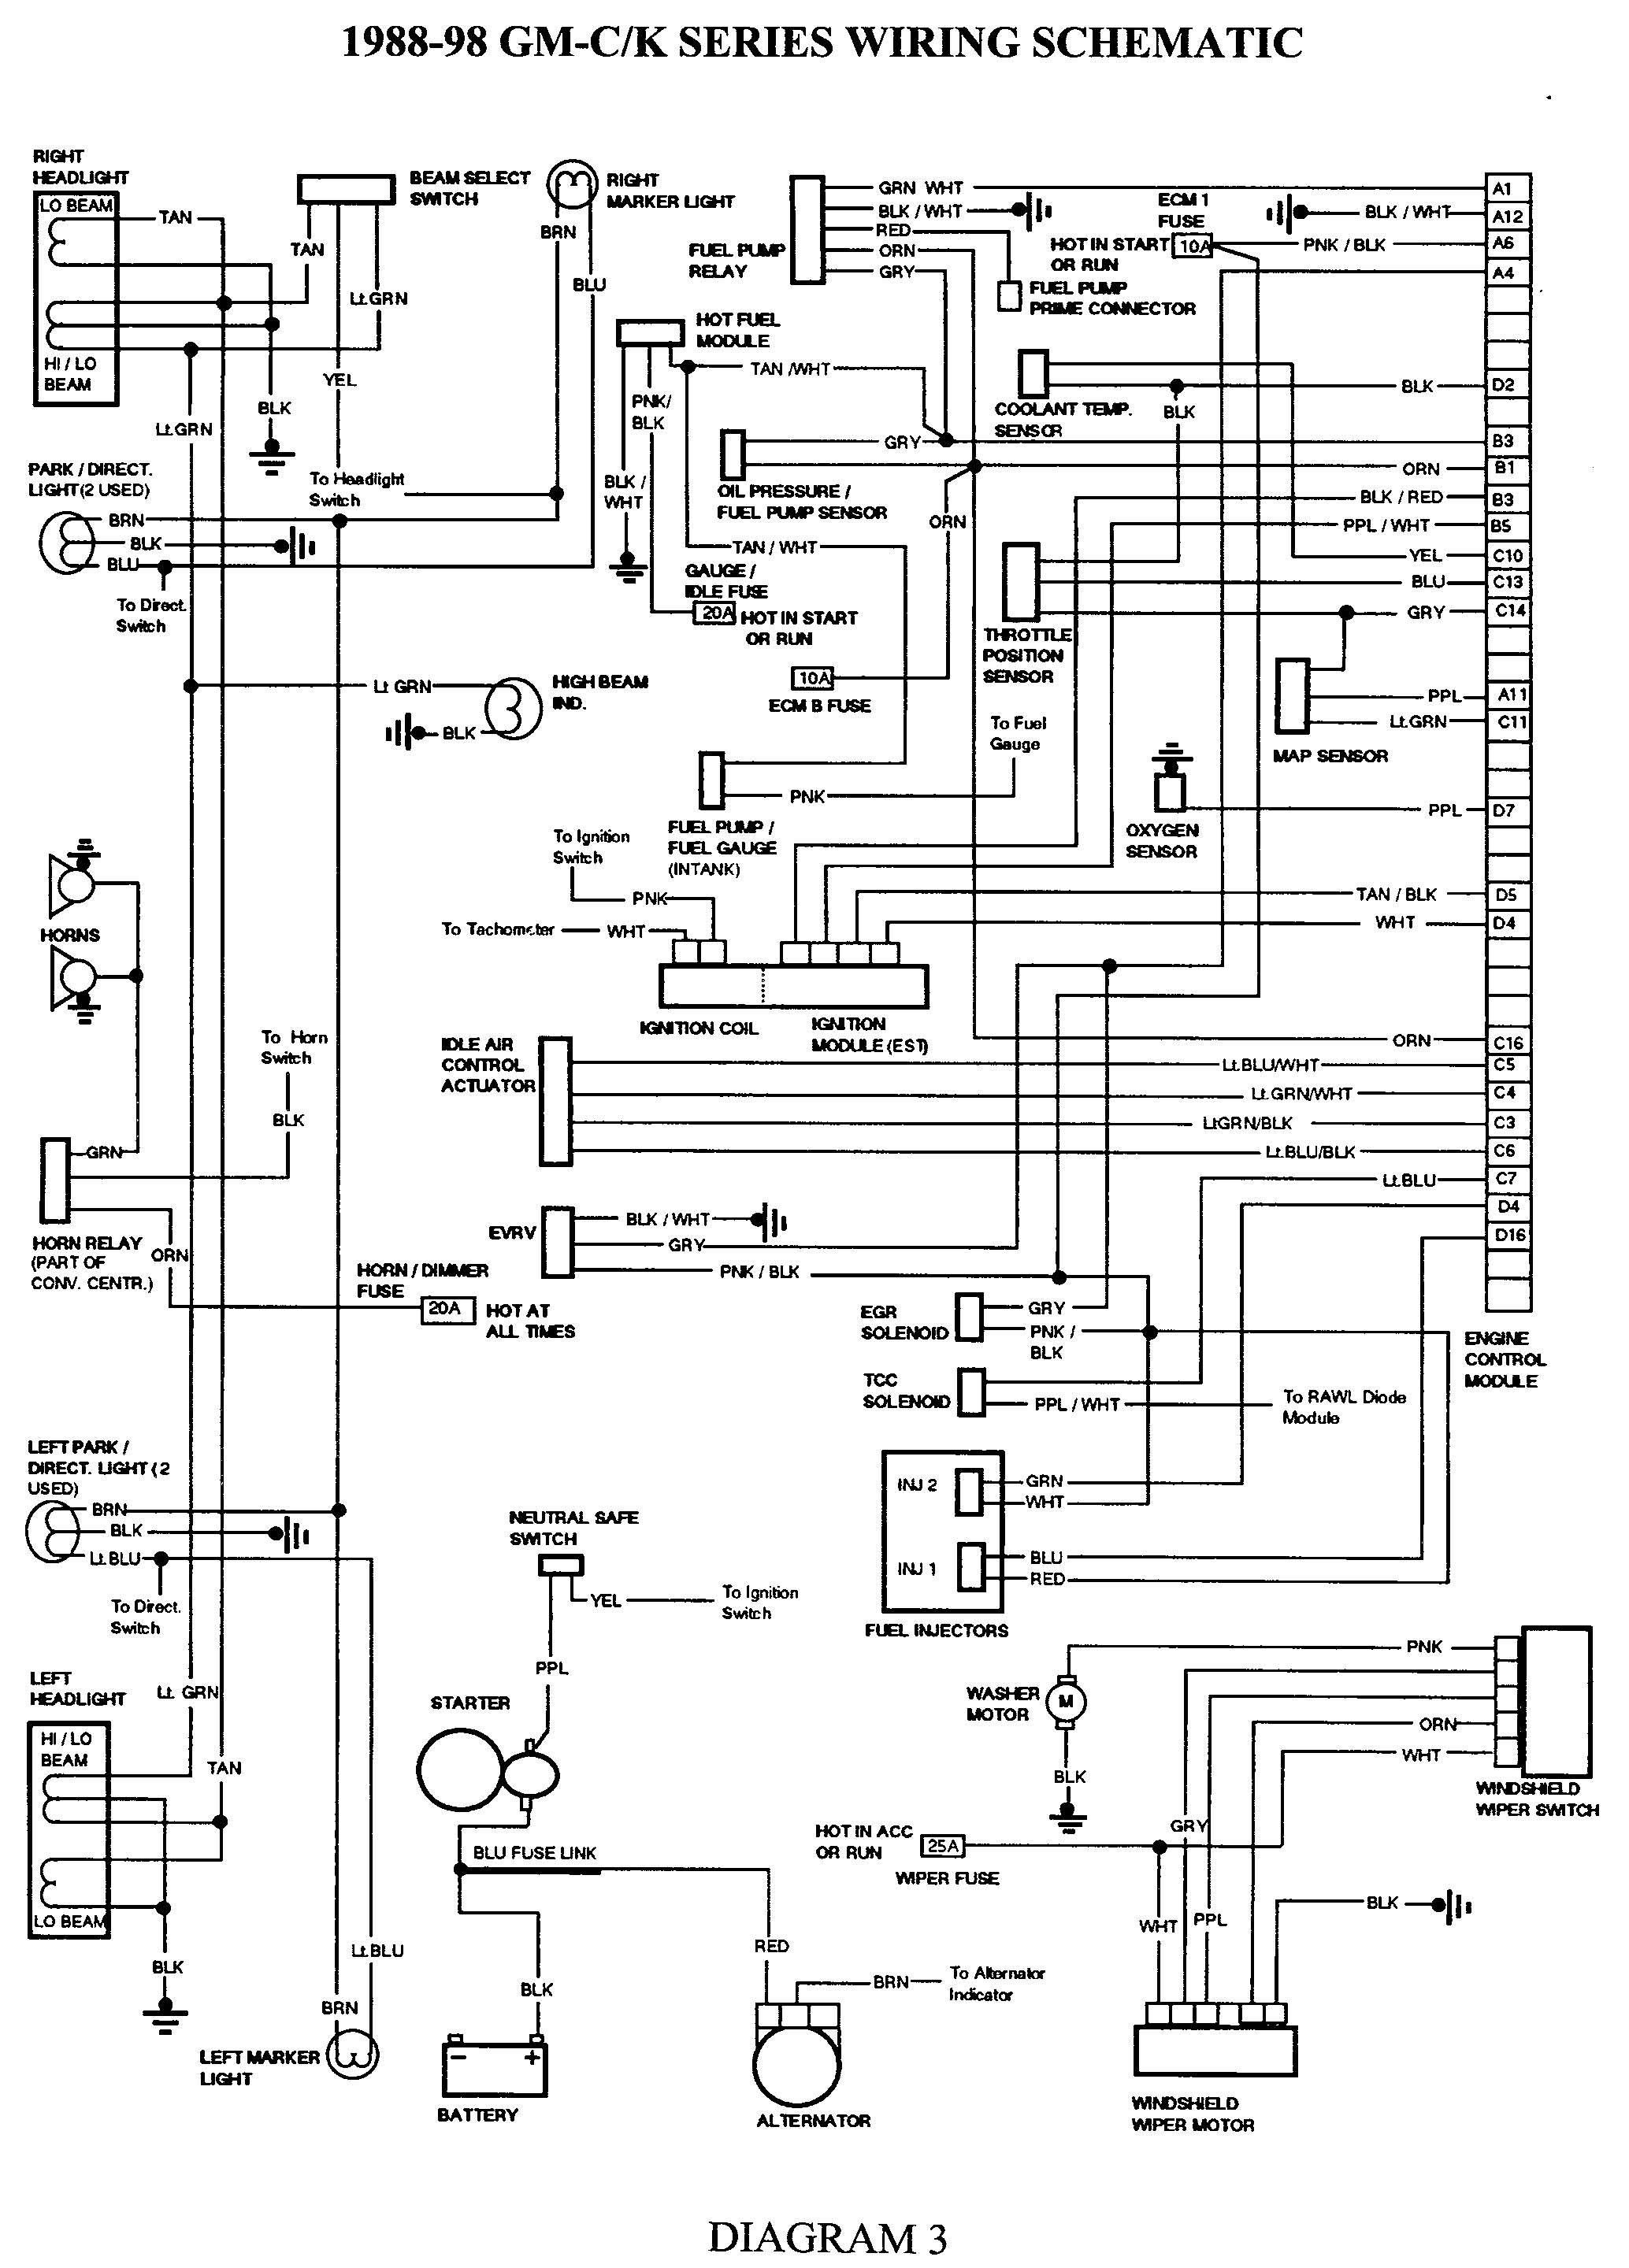 small resolution of unique wiring schematic legend diagram wiringdiagram diagramming diagramm visuals visualisation